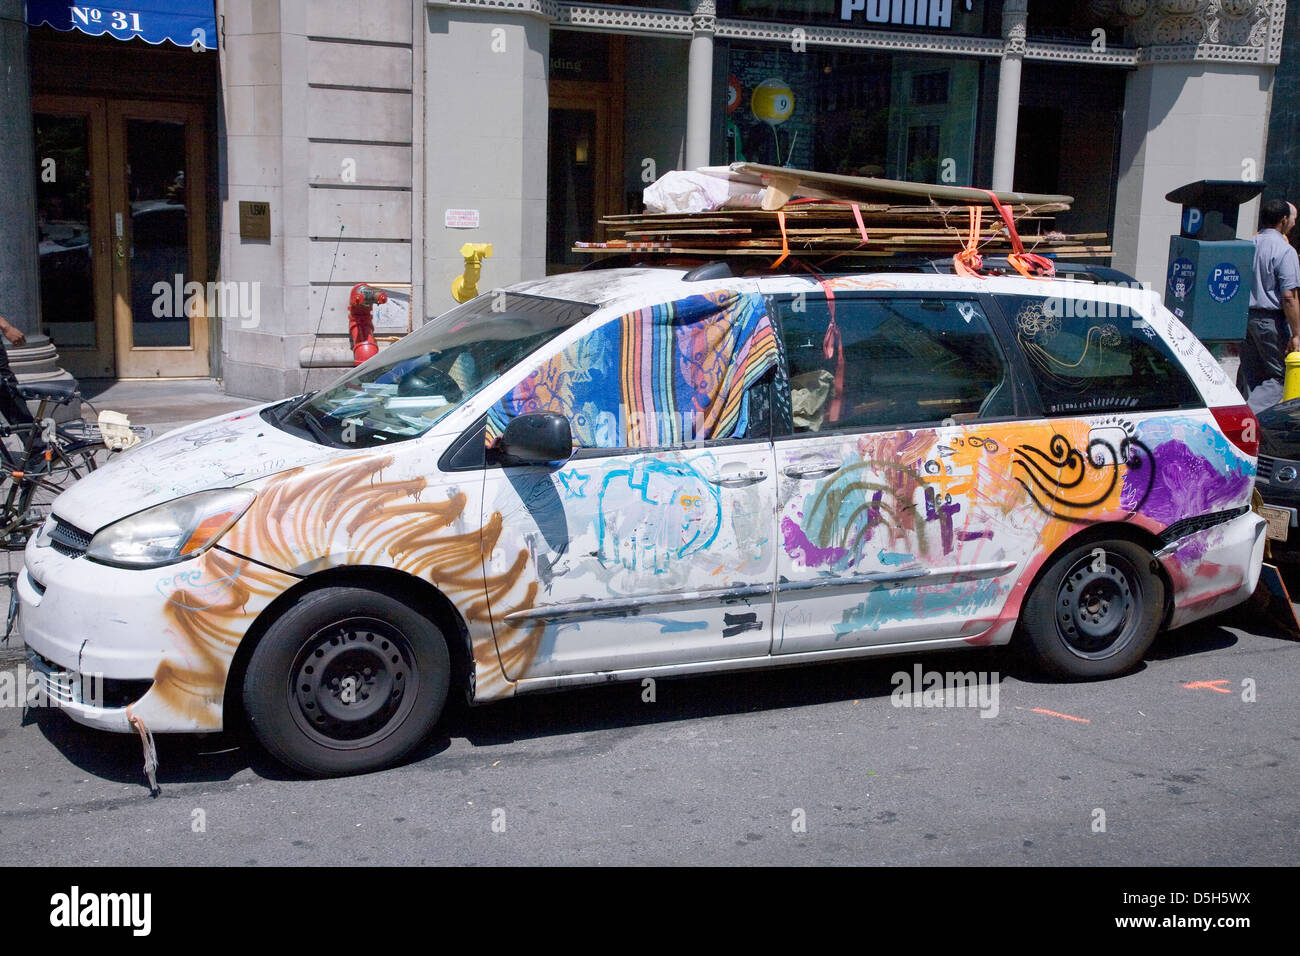 Pakistani-styled painted car in downtown New York City, New York - Stock Image